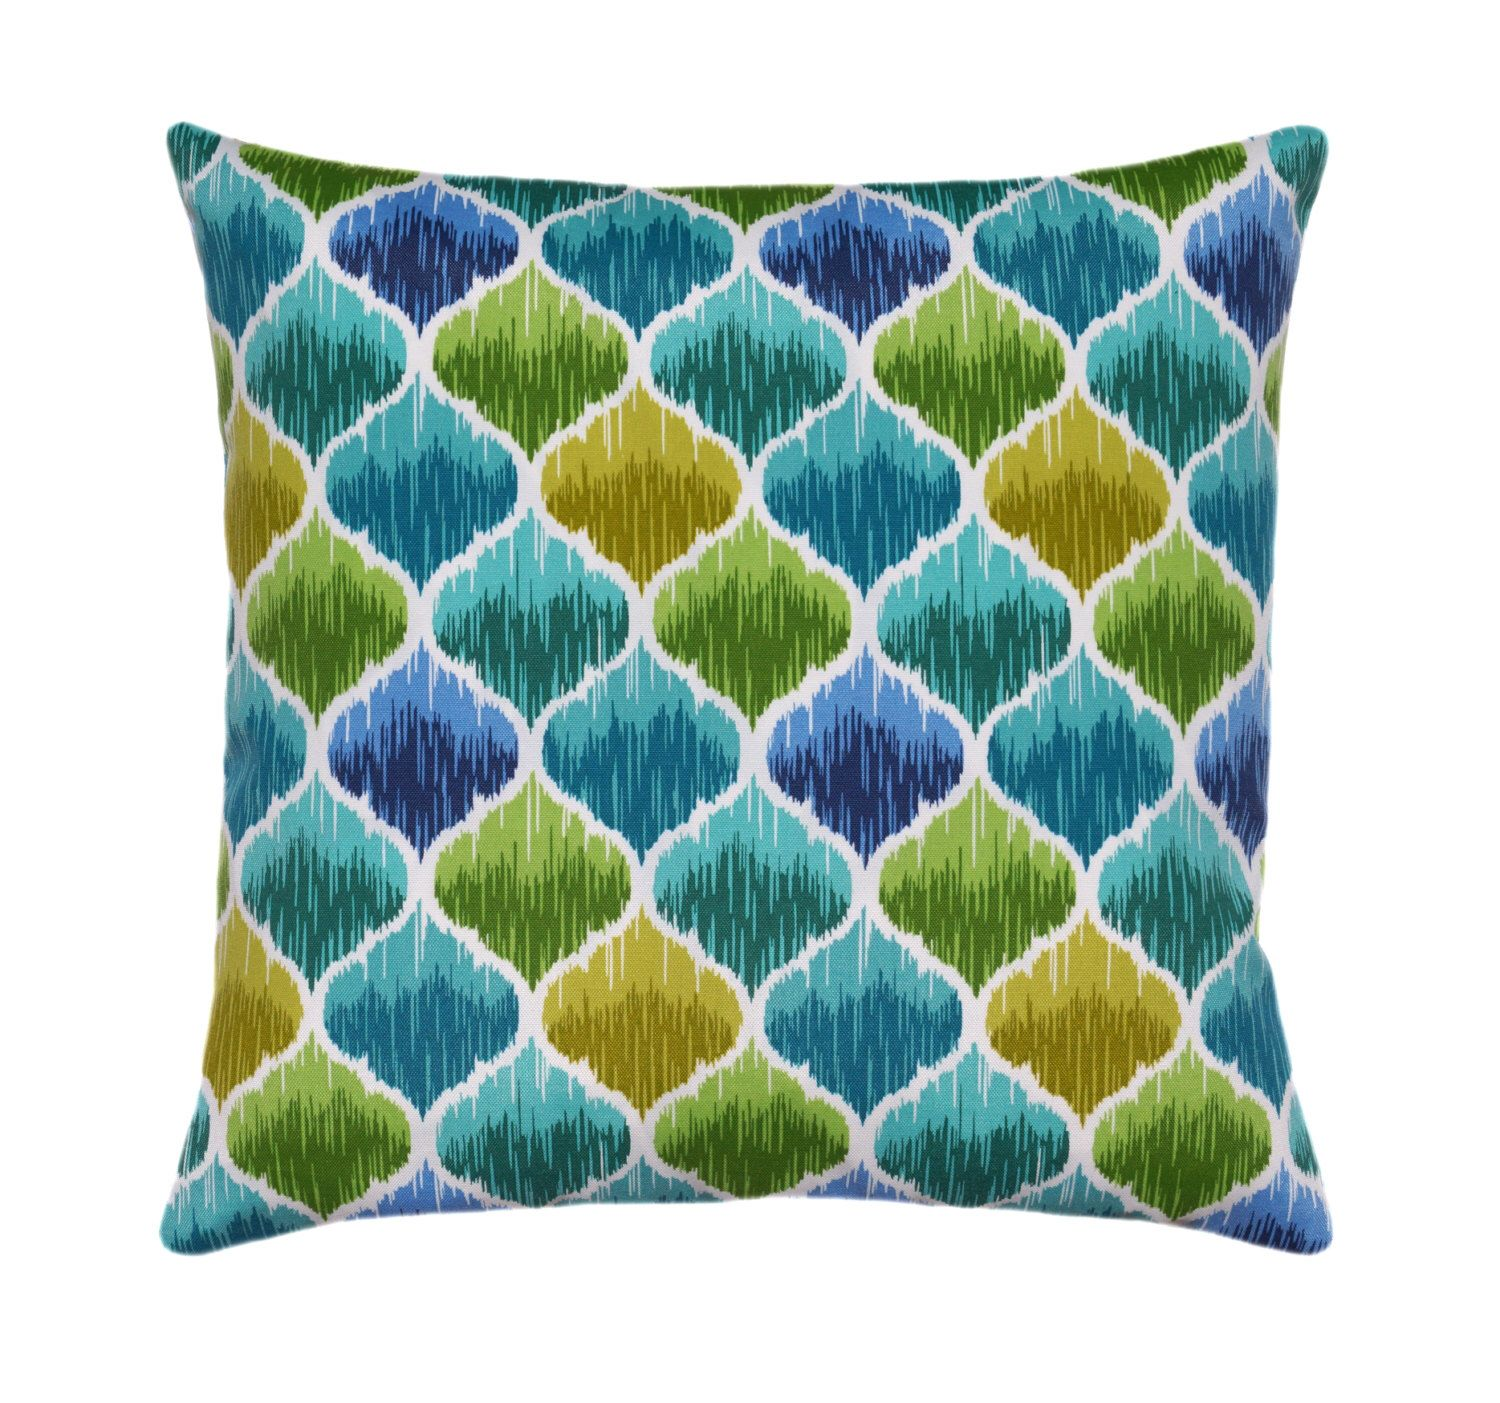 sale beach environments collection com karen royalty amazing pillows outdoor pillow advanced robertson coastal concept